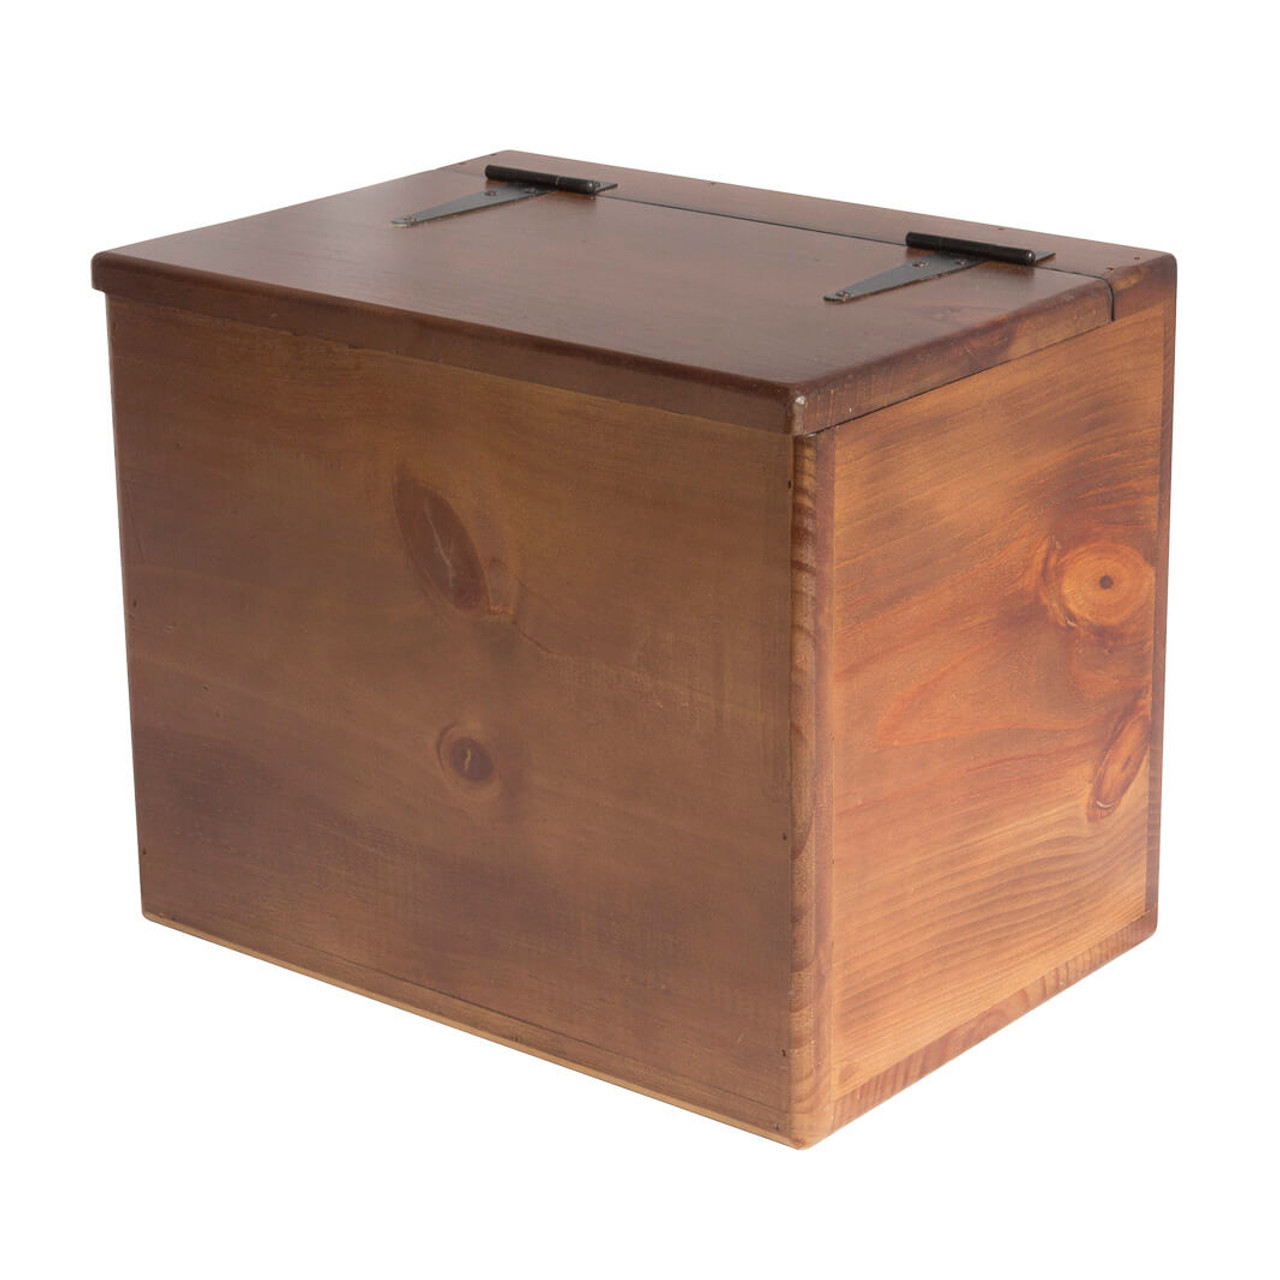 Storage Box Wooden Small Flat Top Spacious Storage Compartment